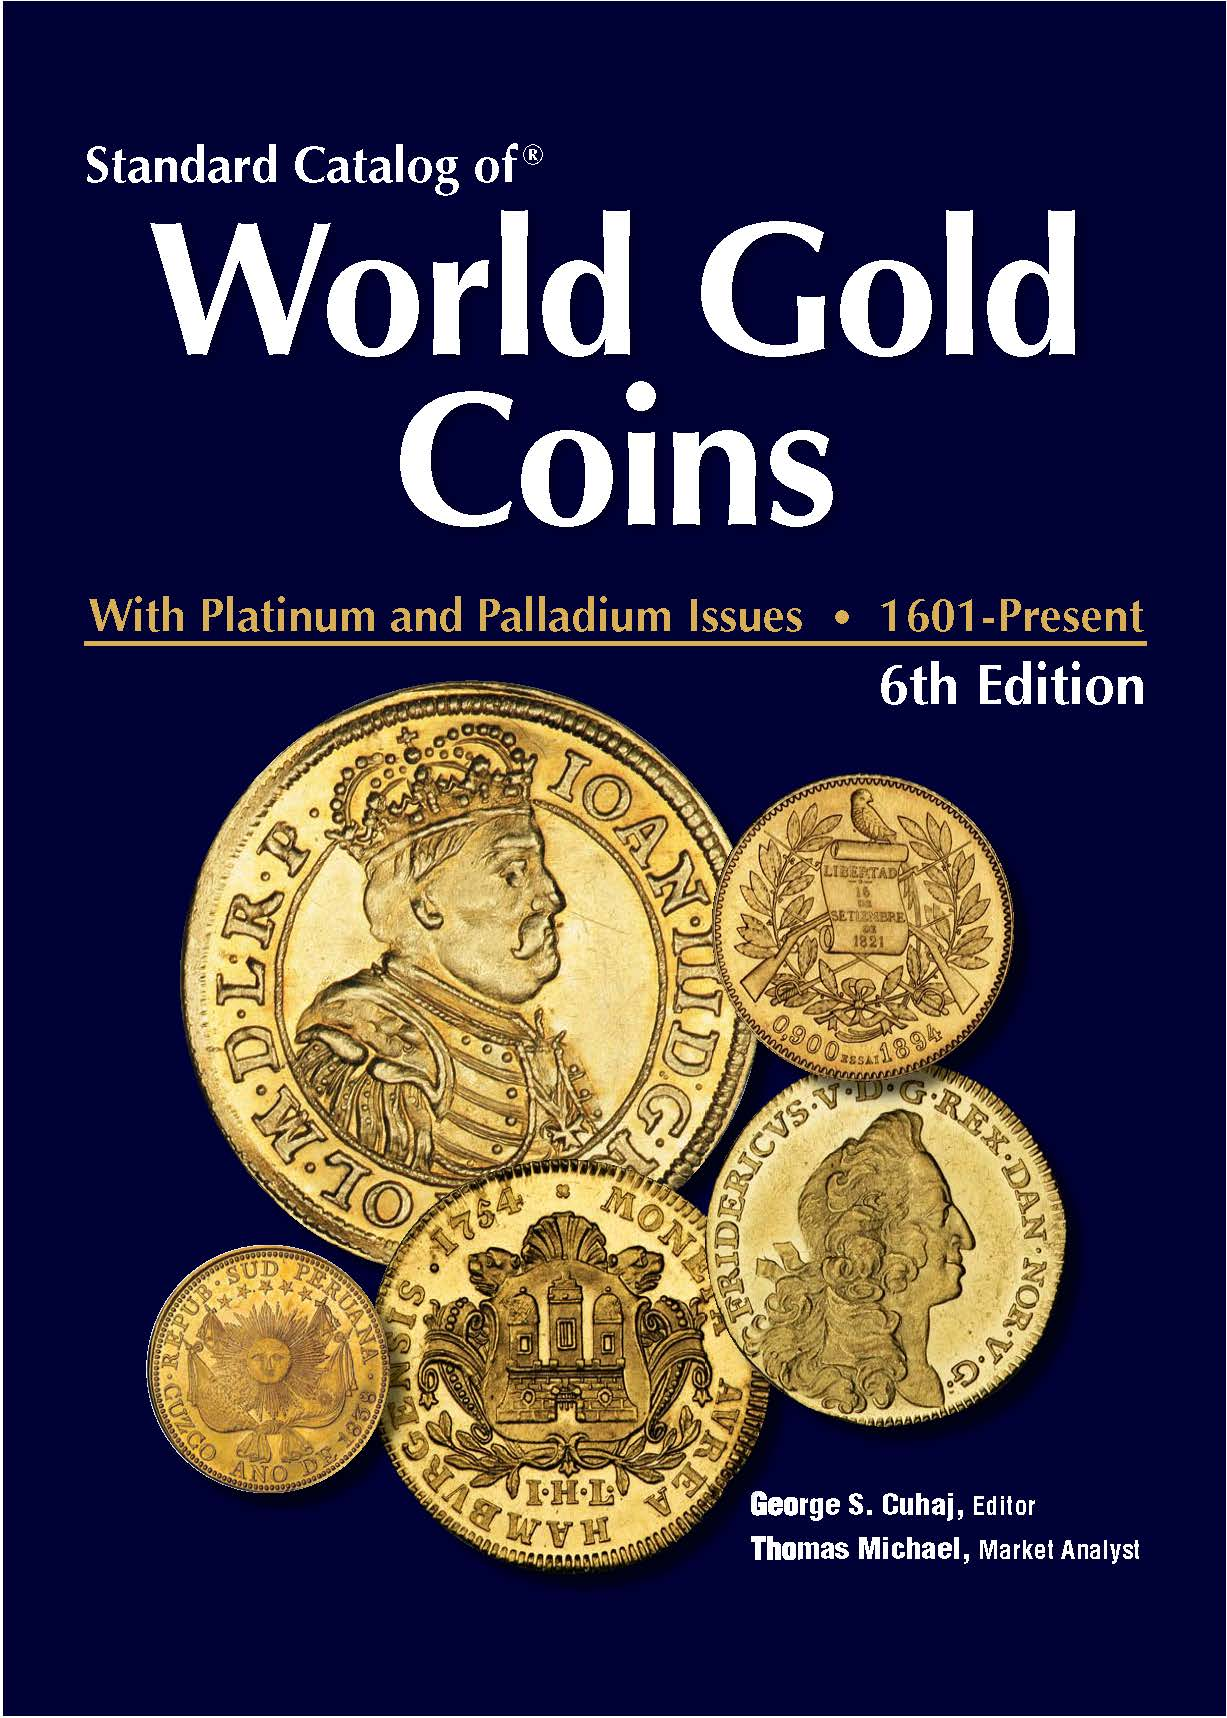 Standard Catalog of World Gold Coins 1601-Present. 6th Ed. SC_WGC_1601_1